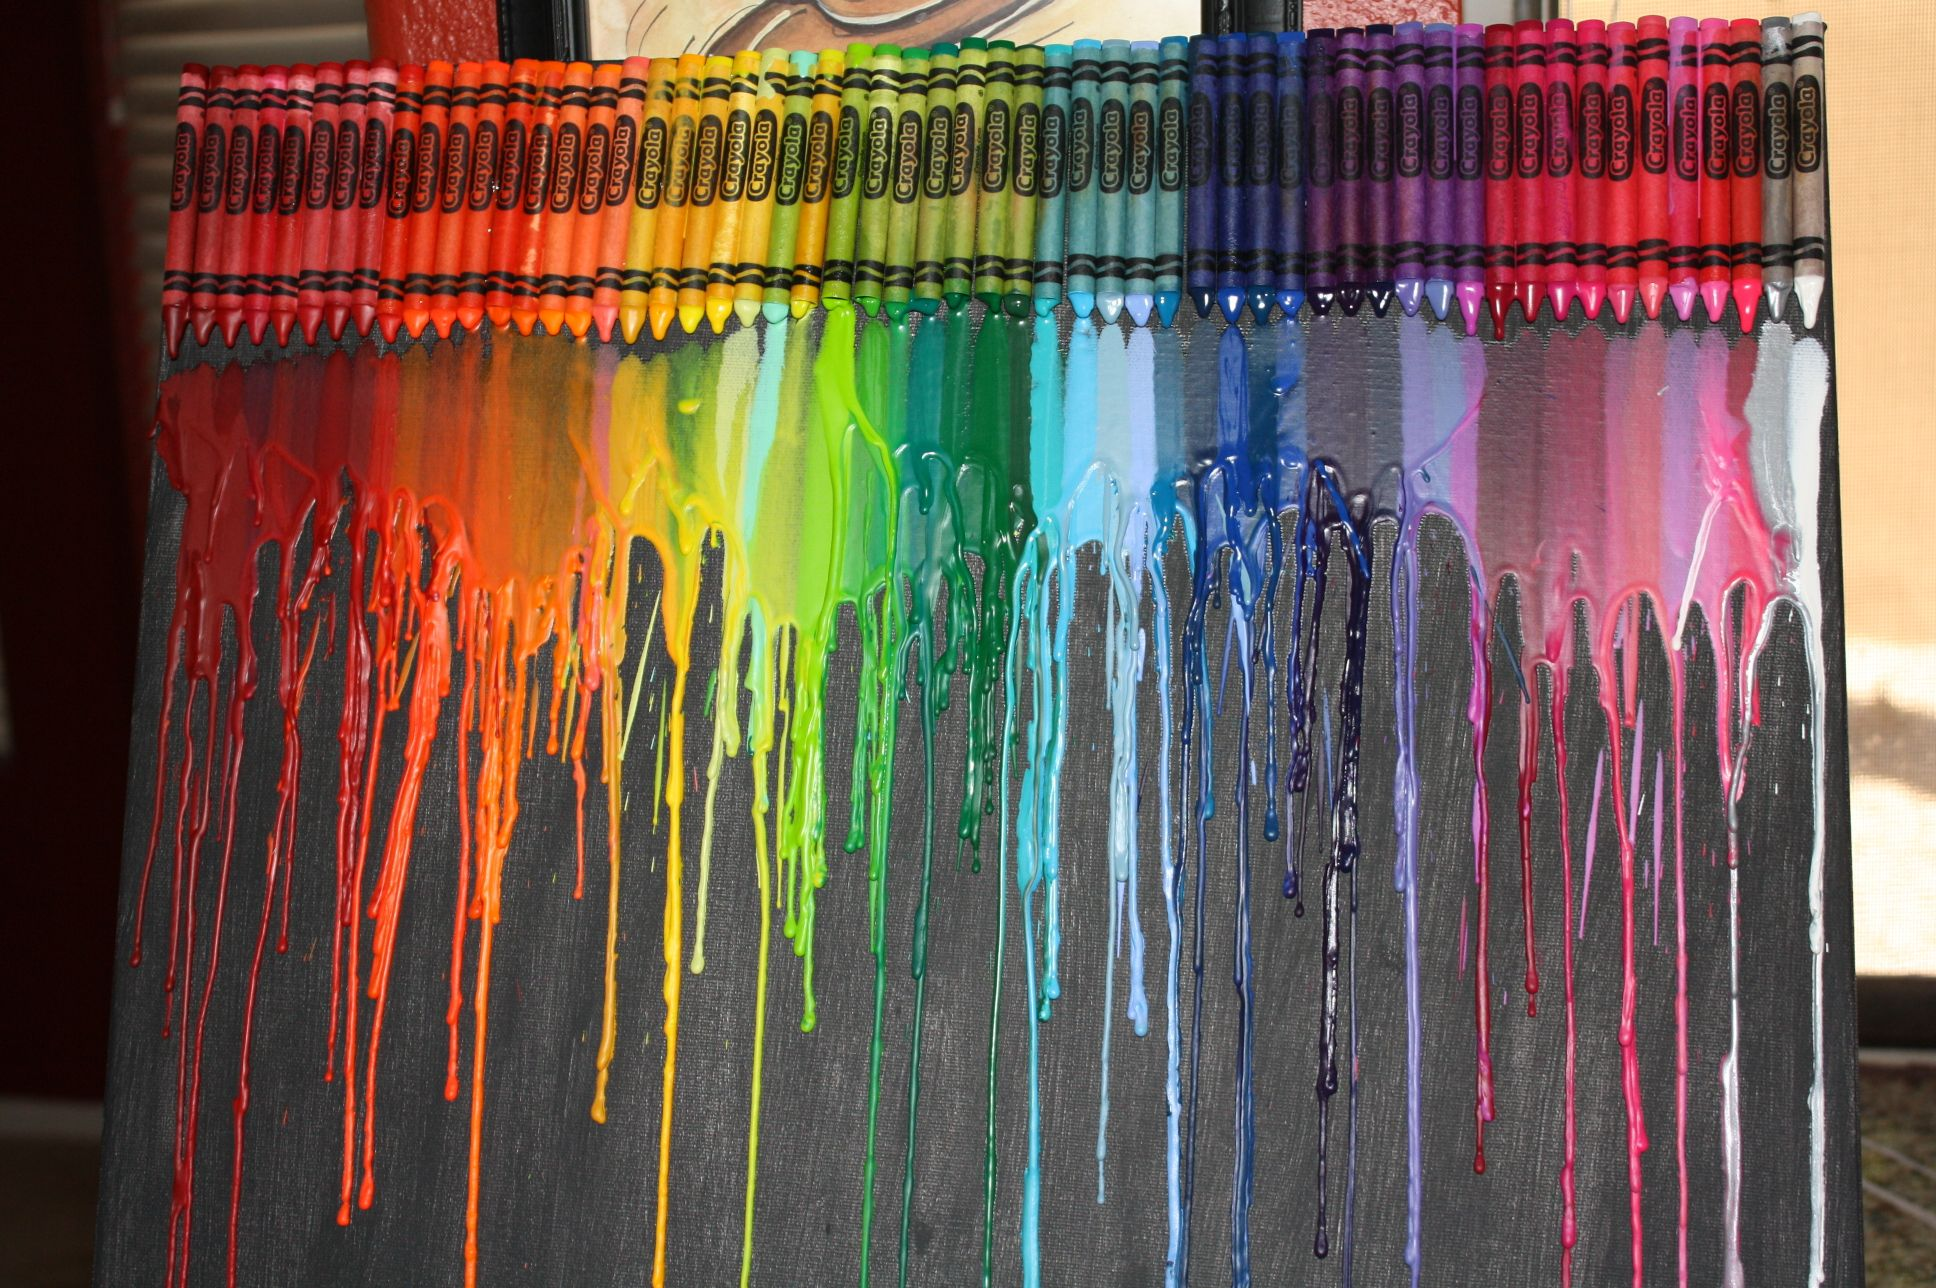 Here is the Crayon Art Alyssa made